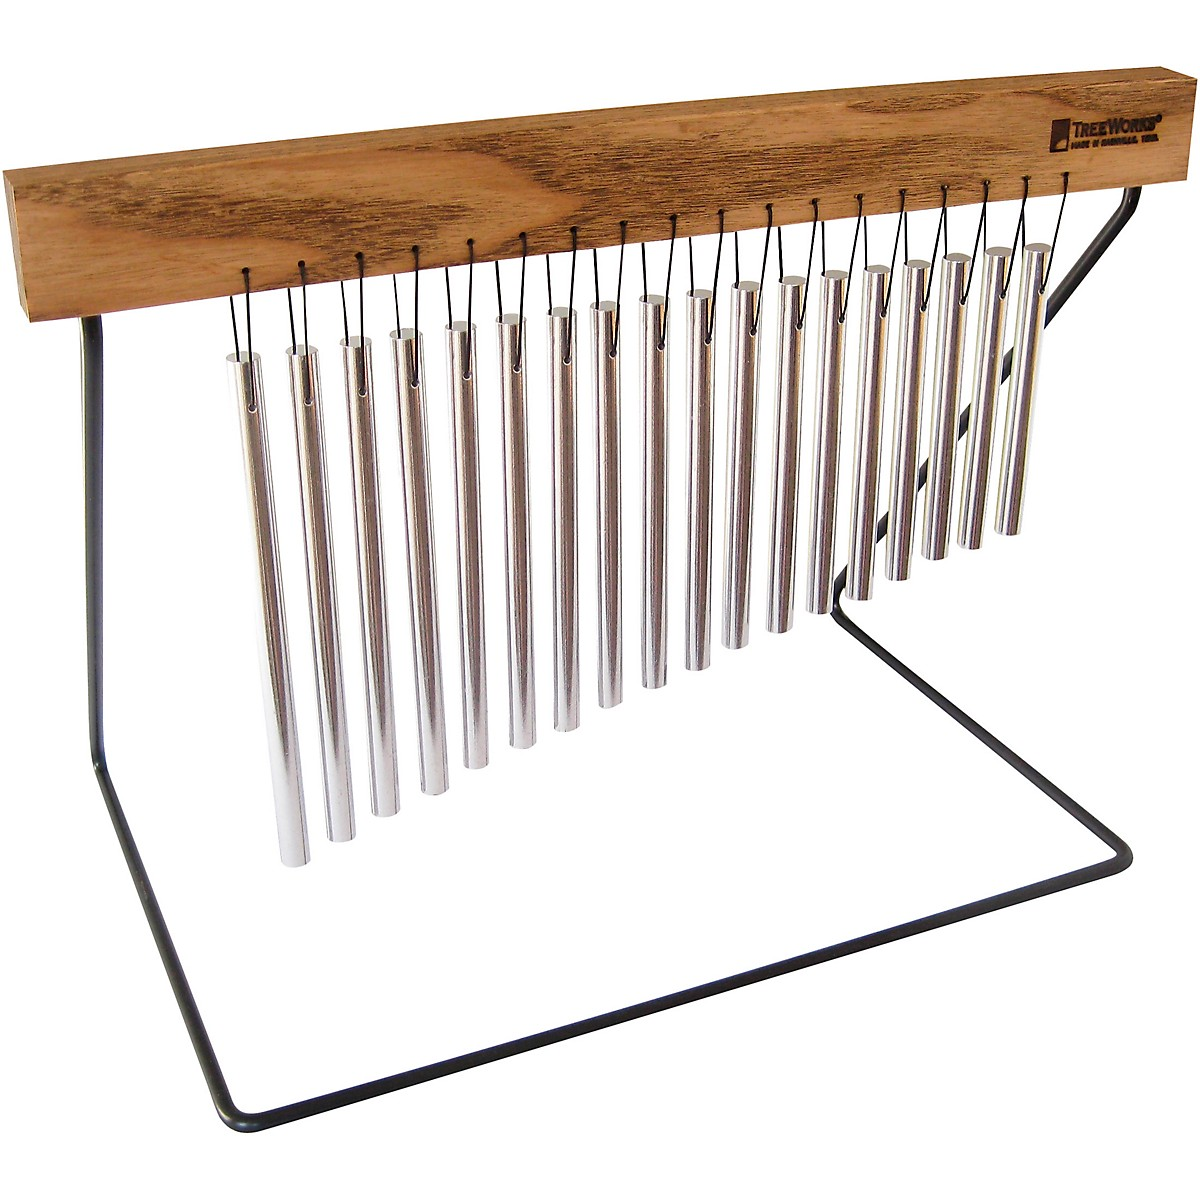 Treeworks Tabletop Chime with Steel Stand